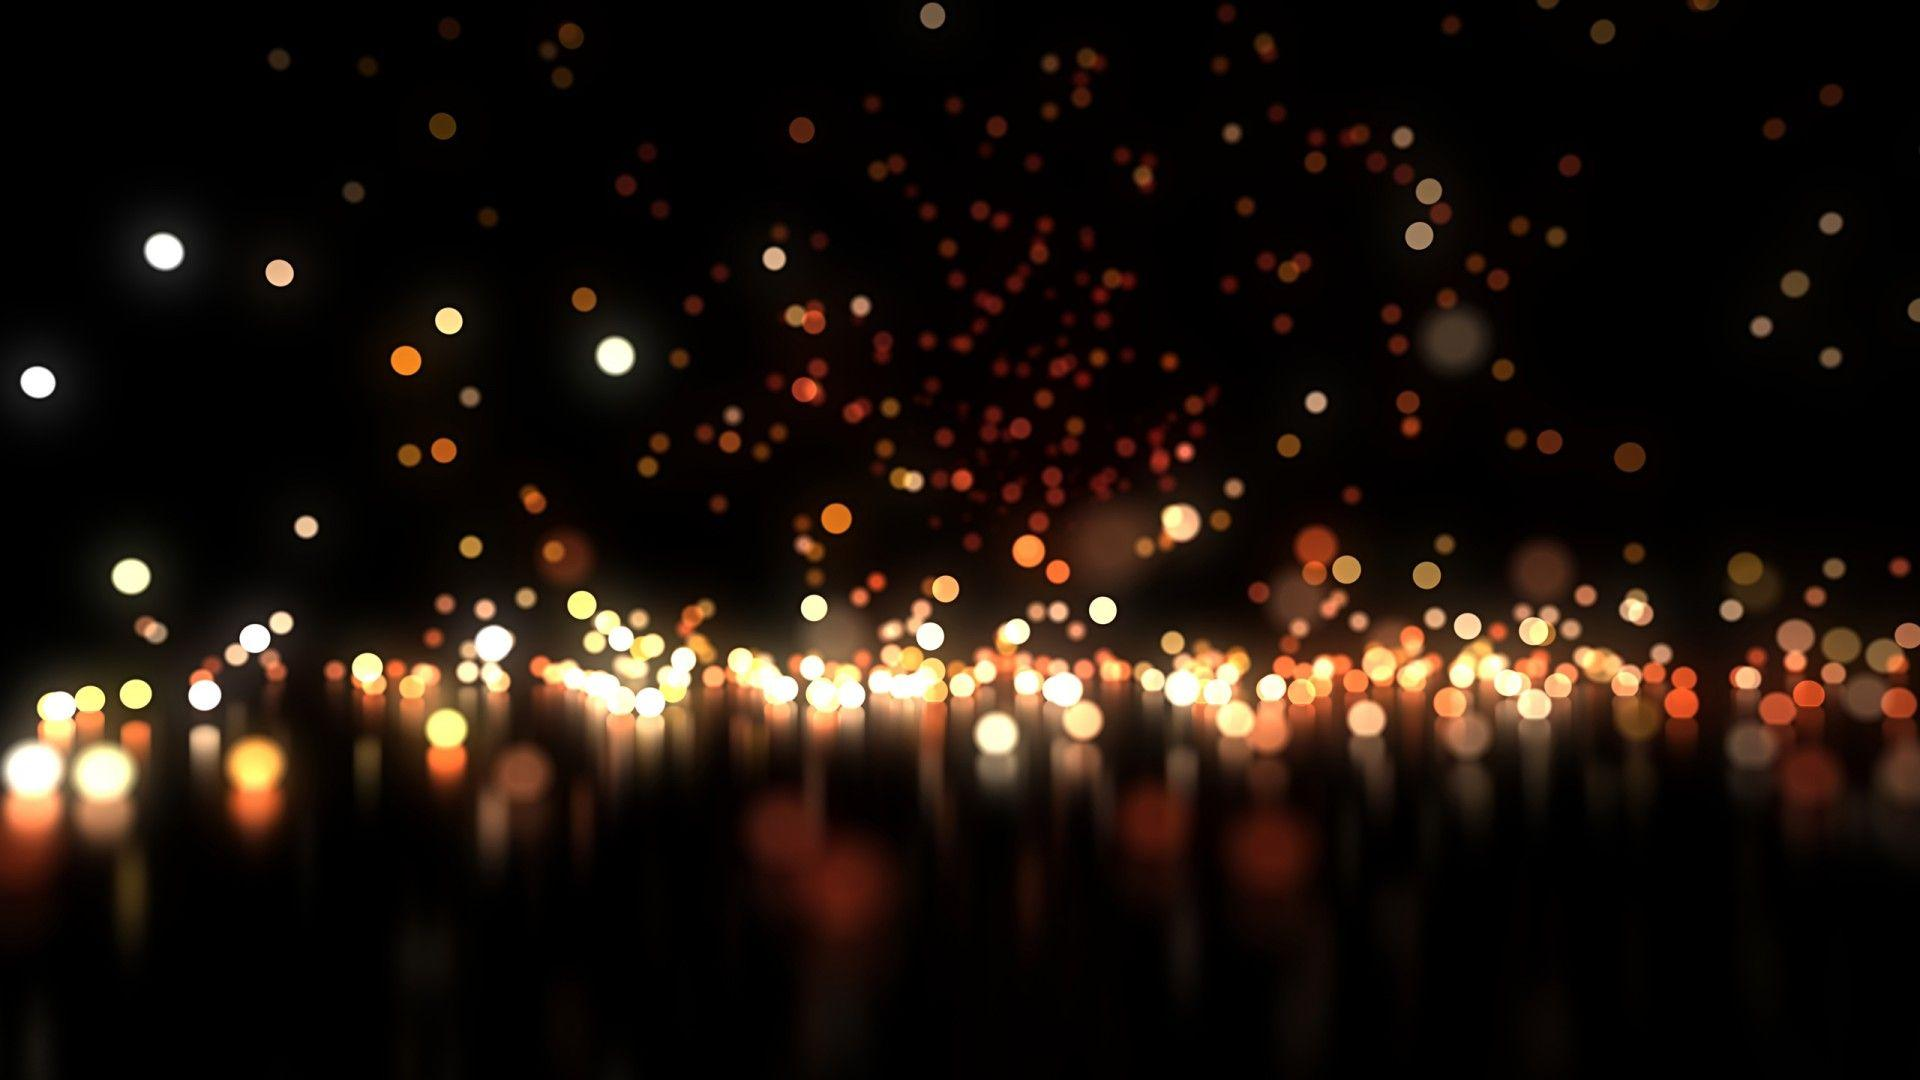 Christmas Glow Particles 1920x1080 (1080p) - Wallpaper - Free ...